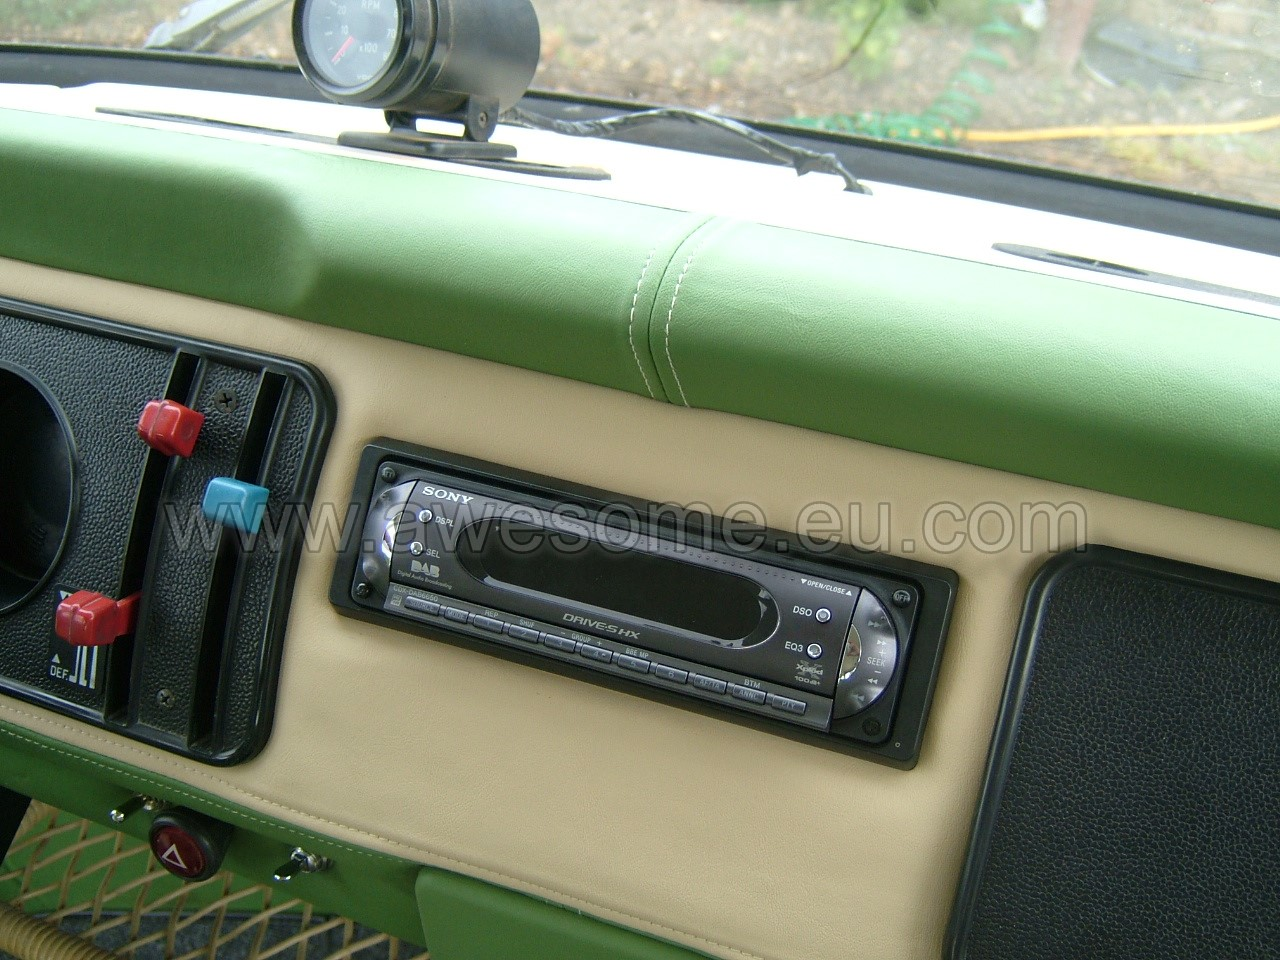 Volkswagen T2 campervan upholstered dashboard 12